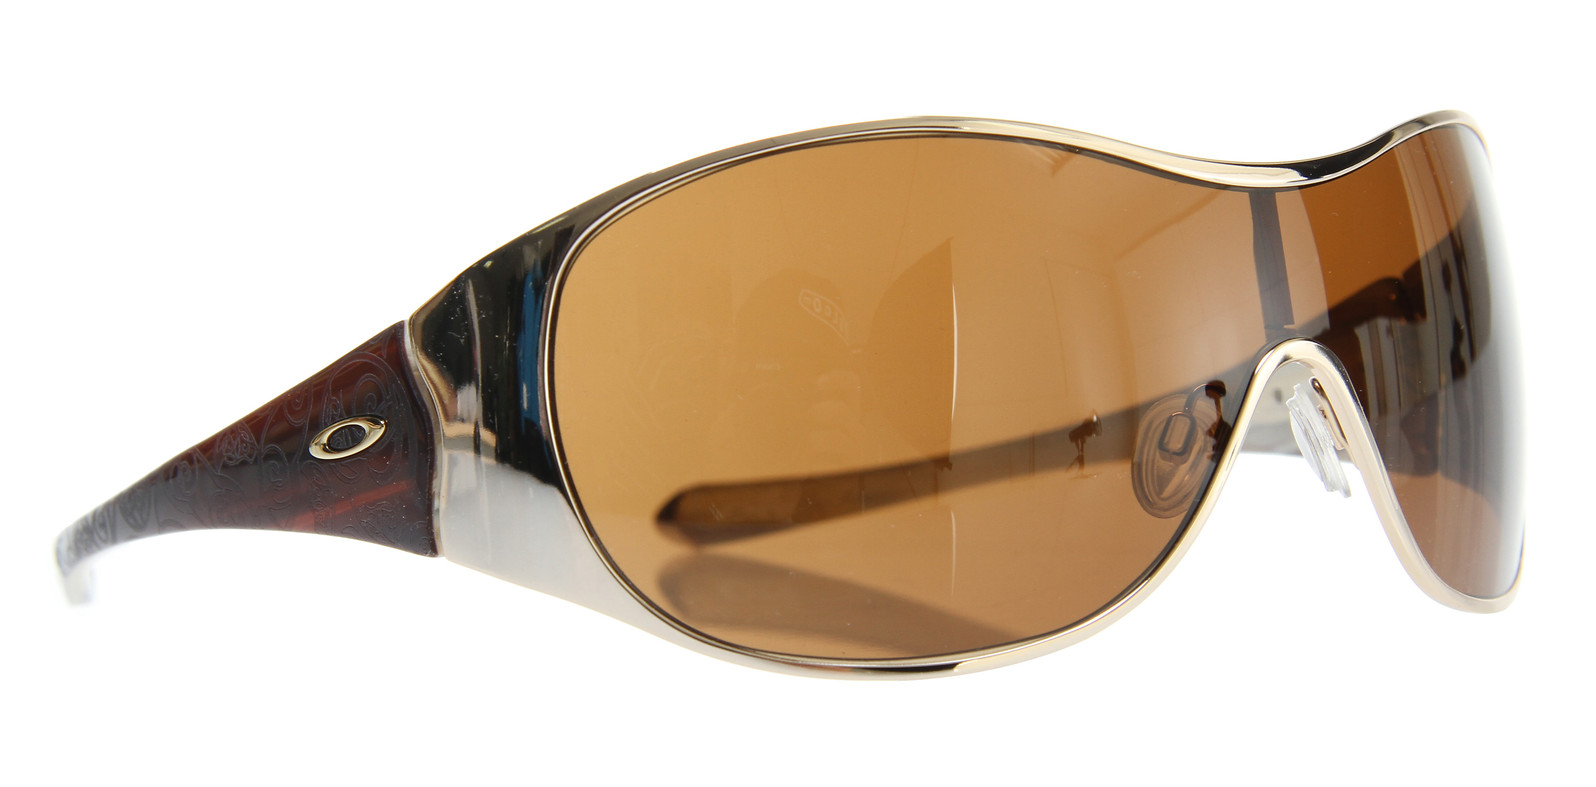 8ec840d9ca2 oak-mph-breathless-sngls-polishedgldbrnz-wmns-11.jpg. Related  Oakley